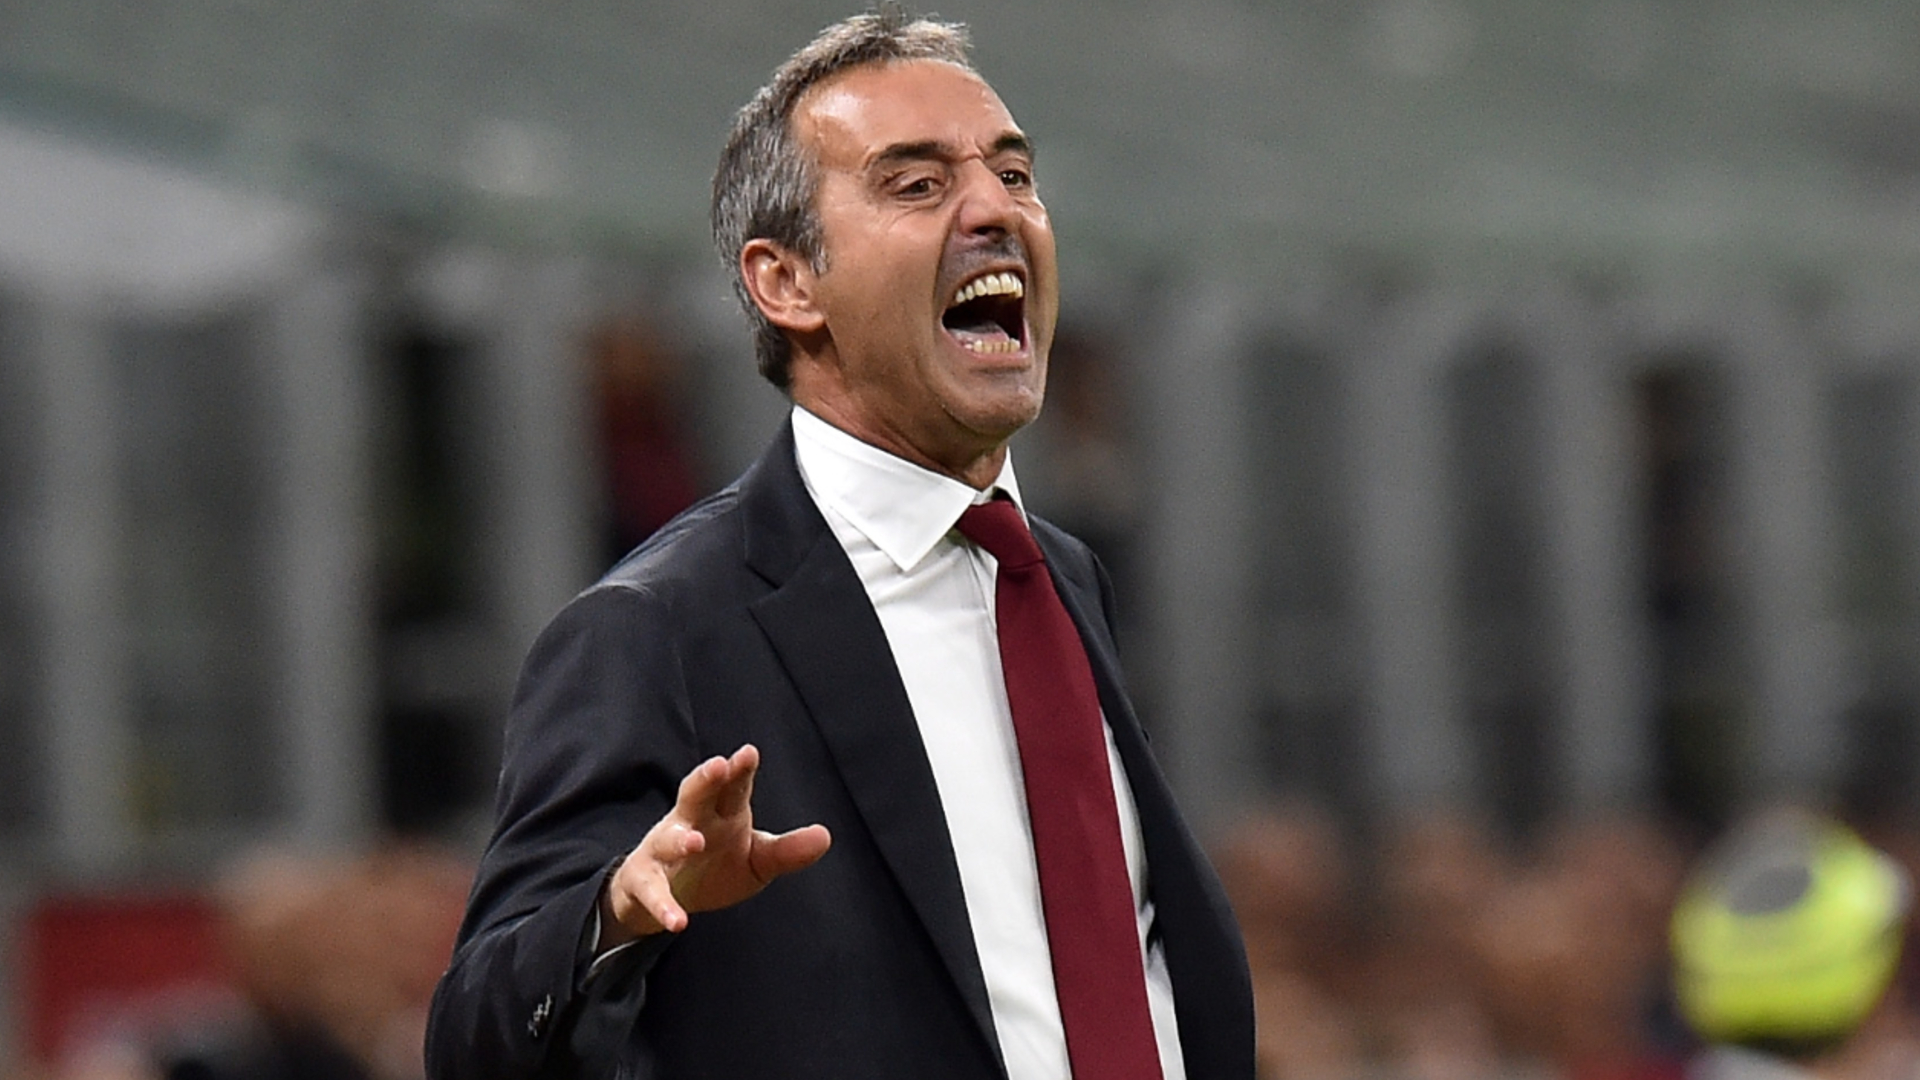 Giampaolo takes up Torino post